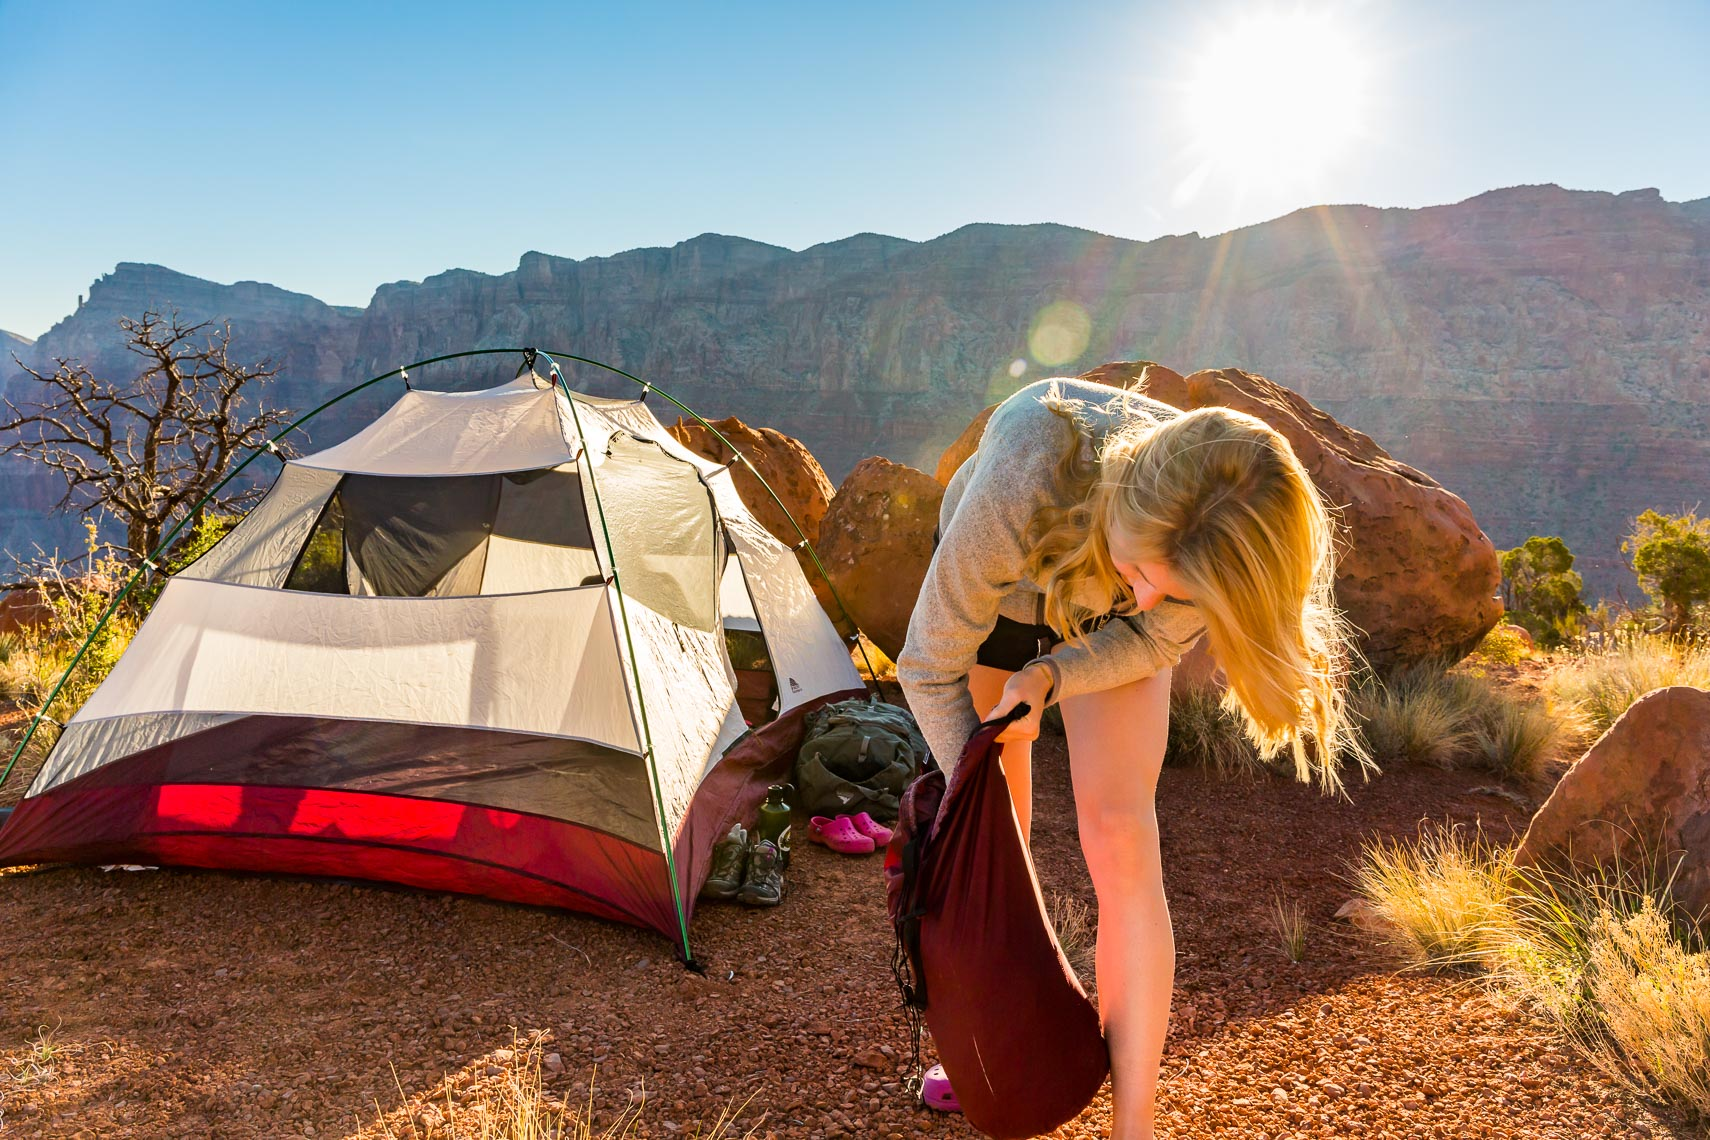 Grand Canyon Backpack Break Camp | Michael DeYoung